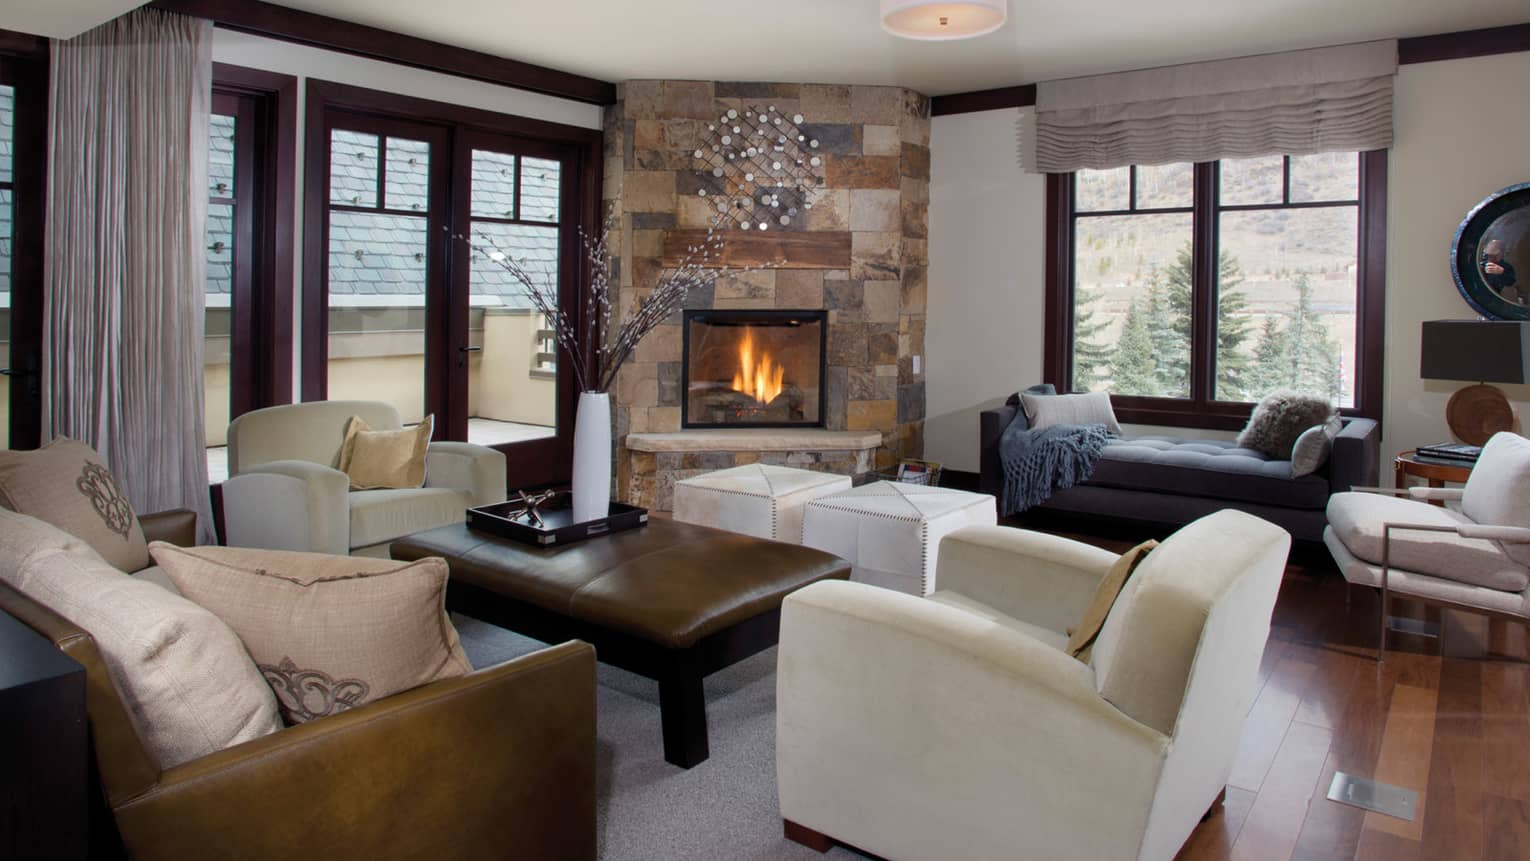 Two-bedroom residence suite living area with leather sofa and coffee table, window chaise, stone fireplace